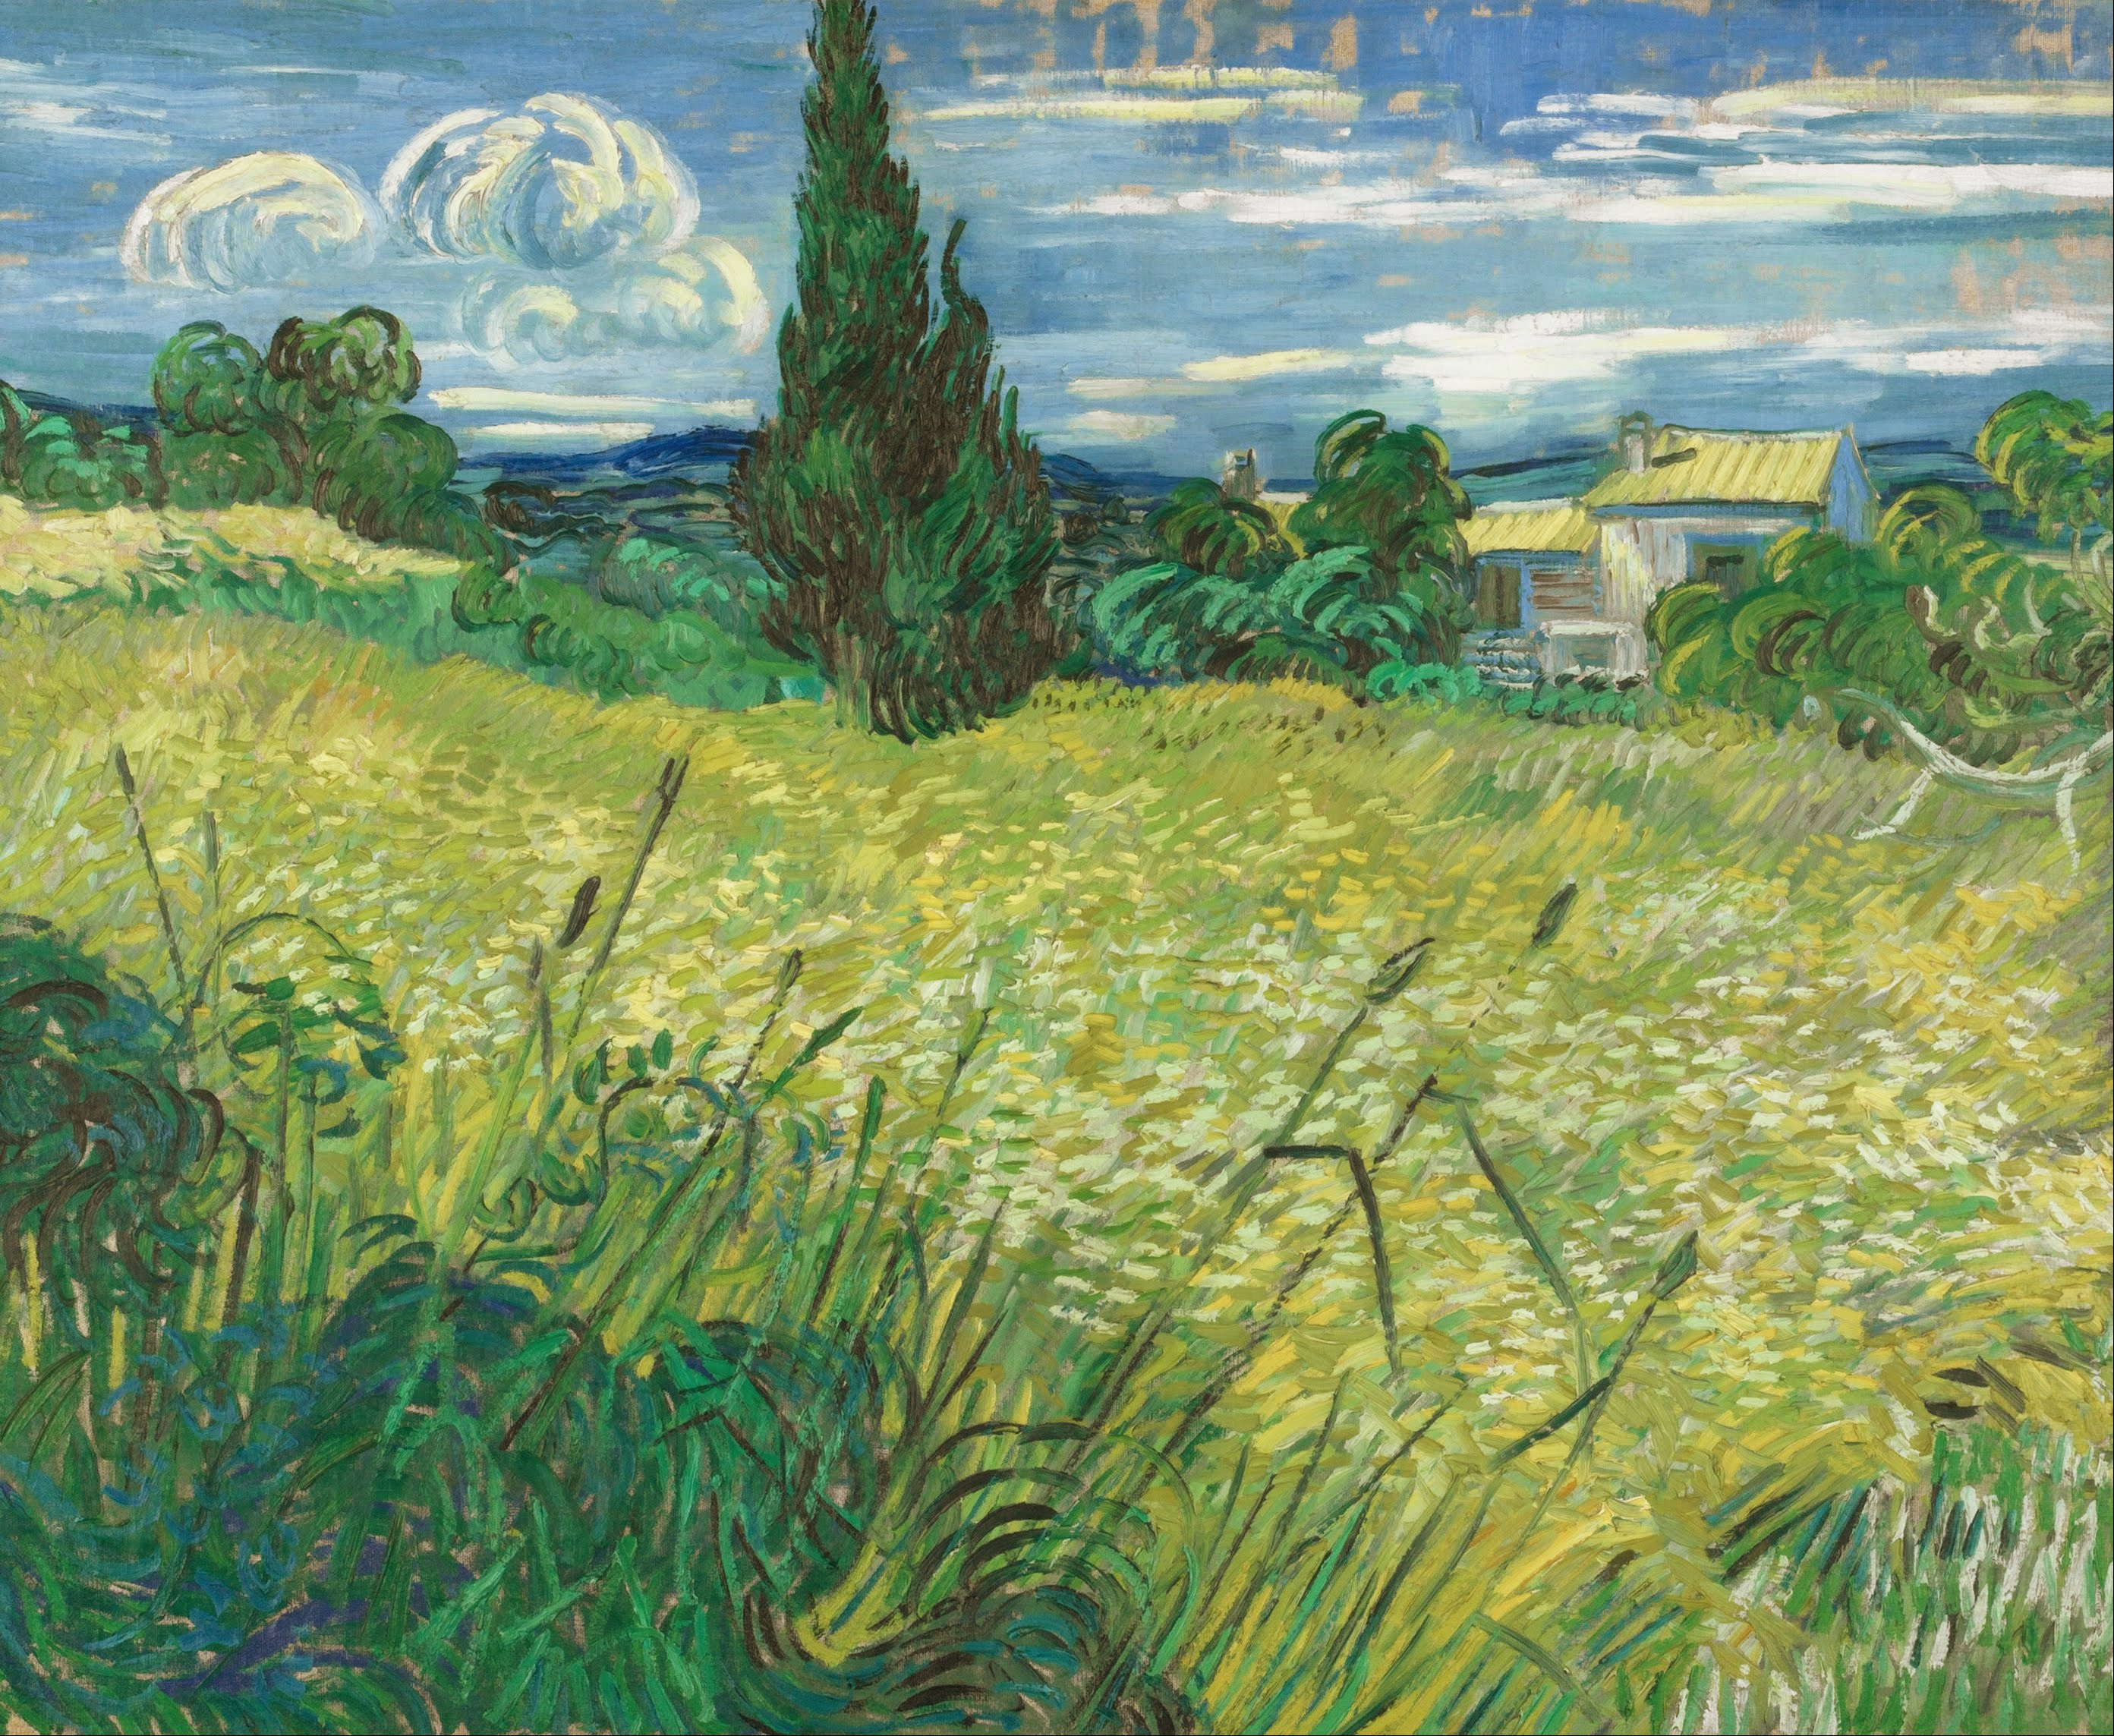 https://upload.wikimedia.org/wikipedia/commons/e/e7/Vincent_van_Gogh_-_Green_Field_-_Google_Art_Project.jpg